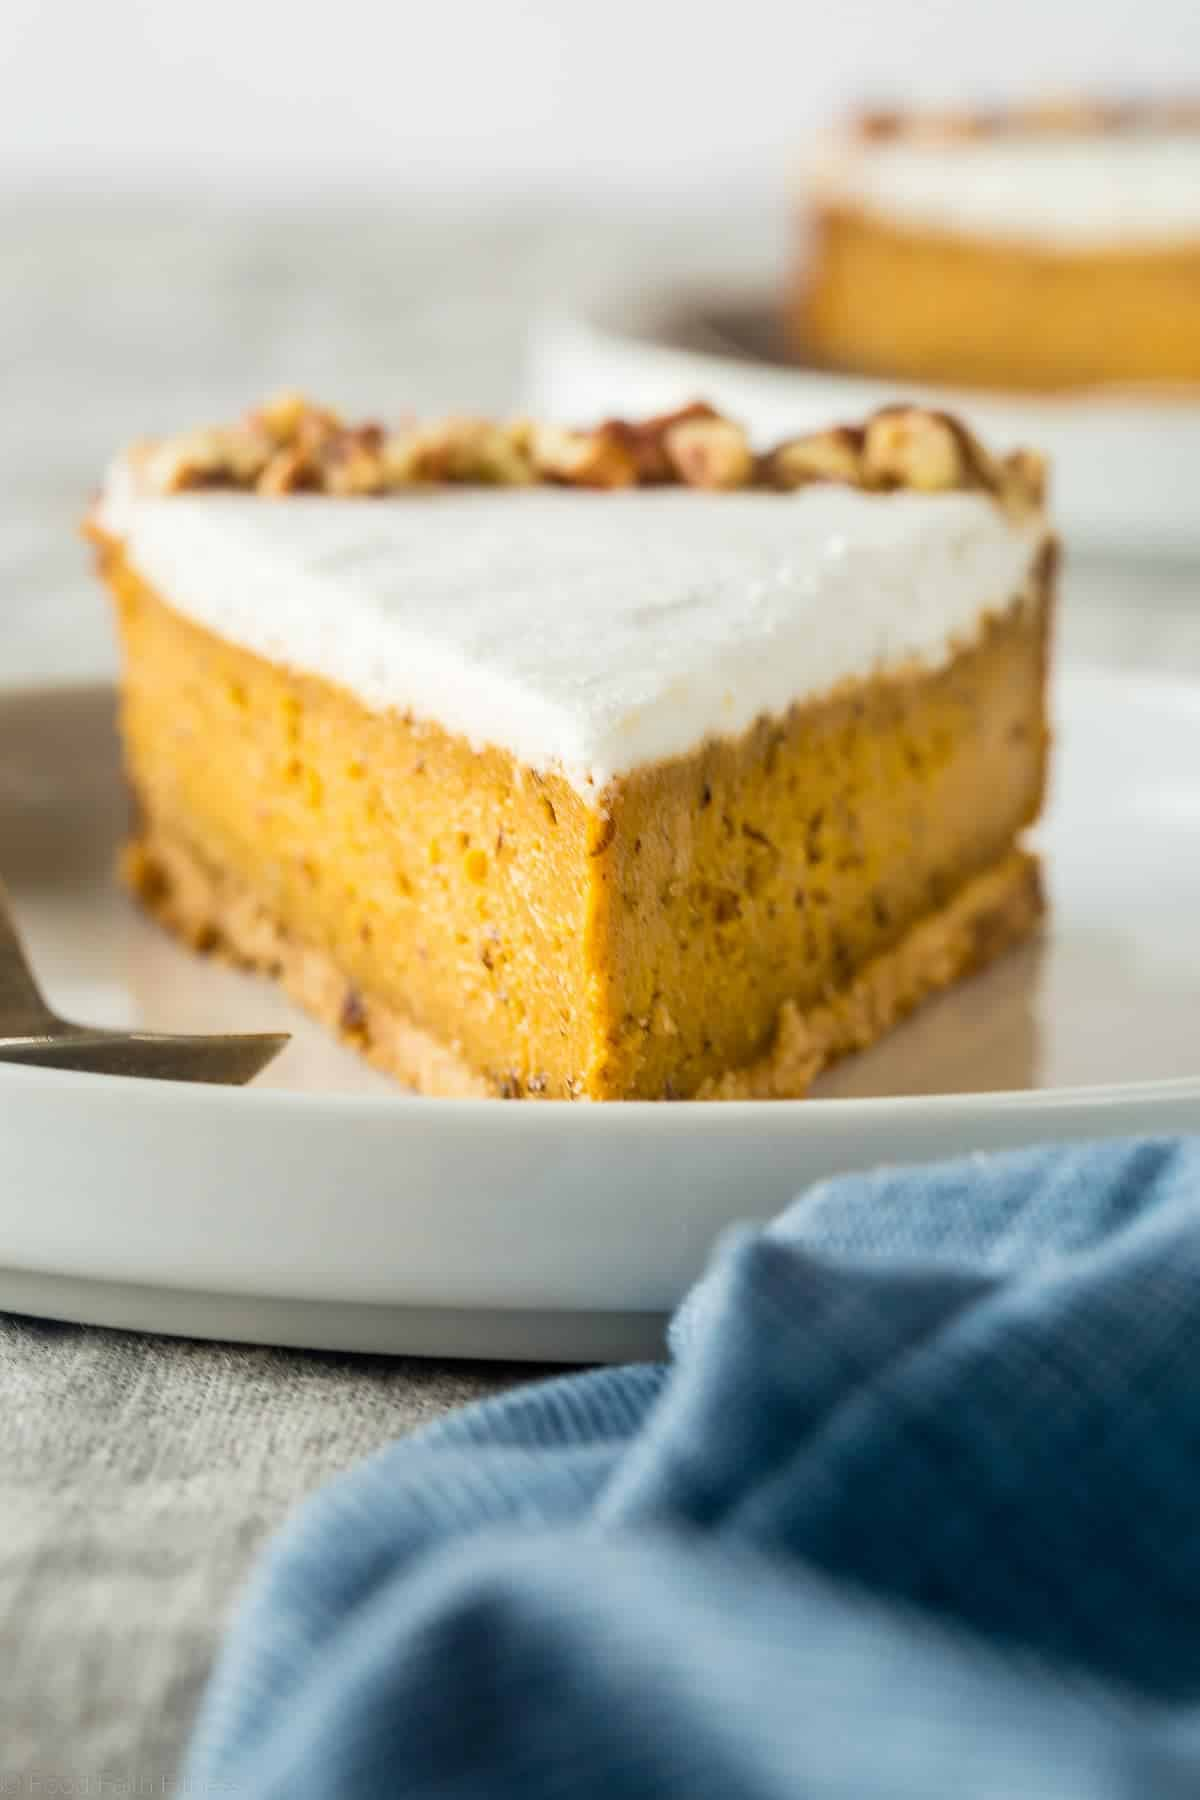 Gluten Free Paleo And Vegan Carrot Cake Cheesecake - This super easy, rich, creamy, paleo and vegan friendly cheesecake tastes like carrot cake but is secretly dairy, gluten, egg and refined sugar free and healthy! Perfect for Easter! | Foodfaithfitness.com | @FoodFaithFit